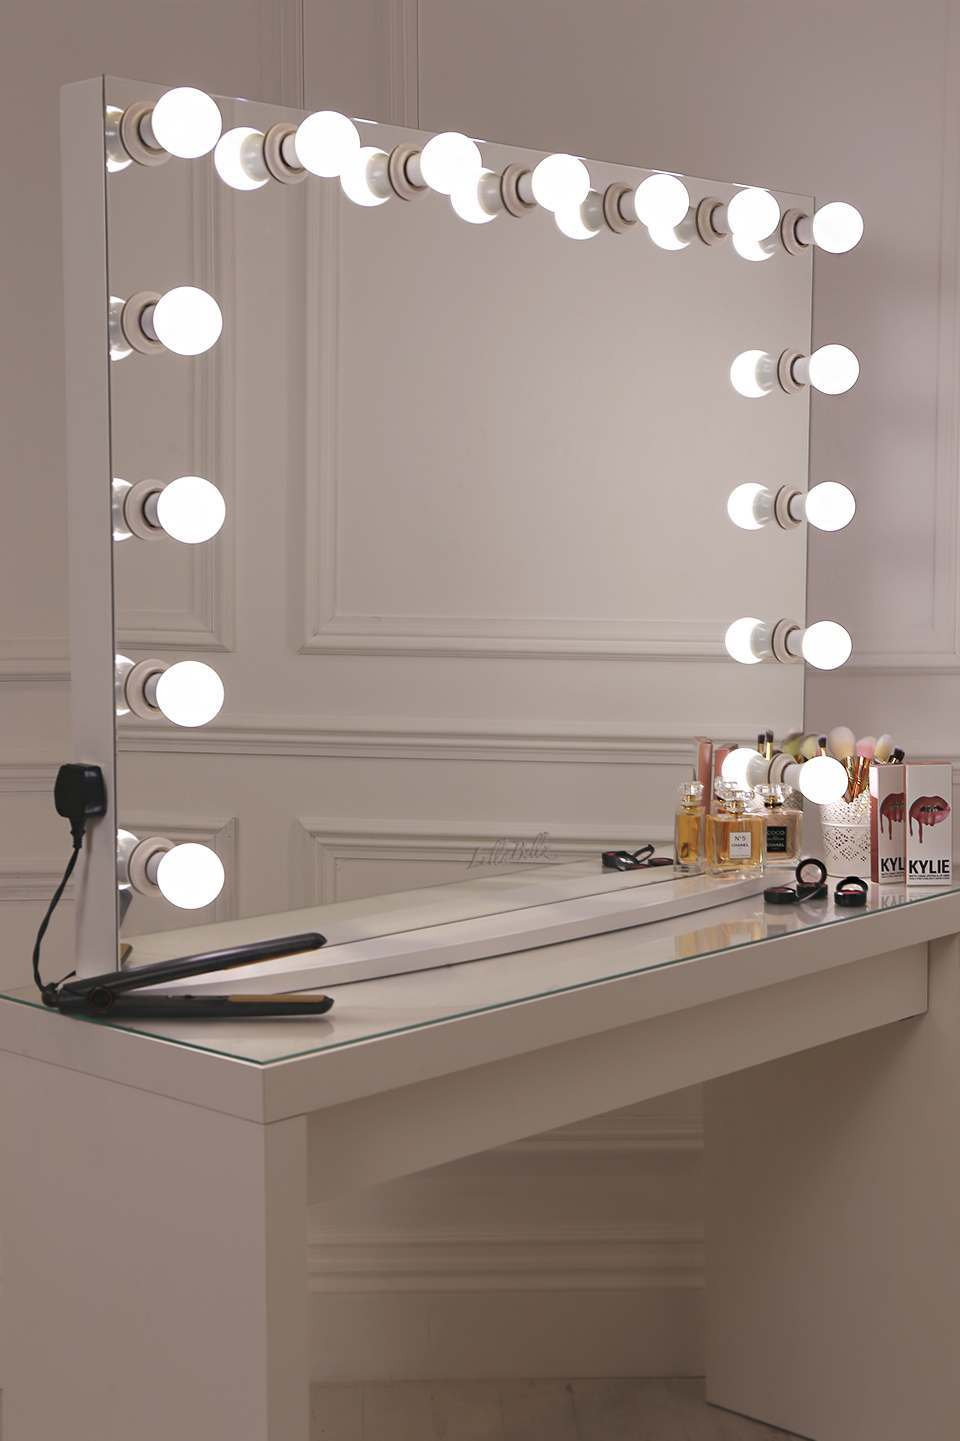 Hollywood Glow XL Pro Vanity Mirror